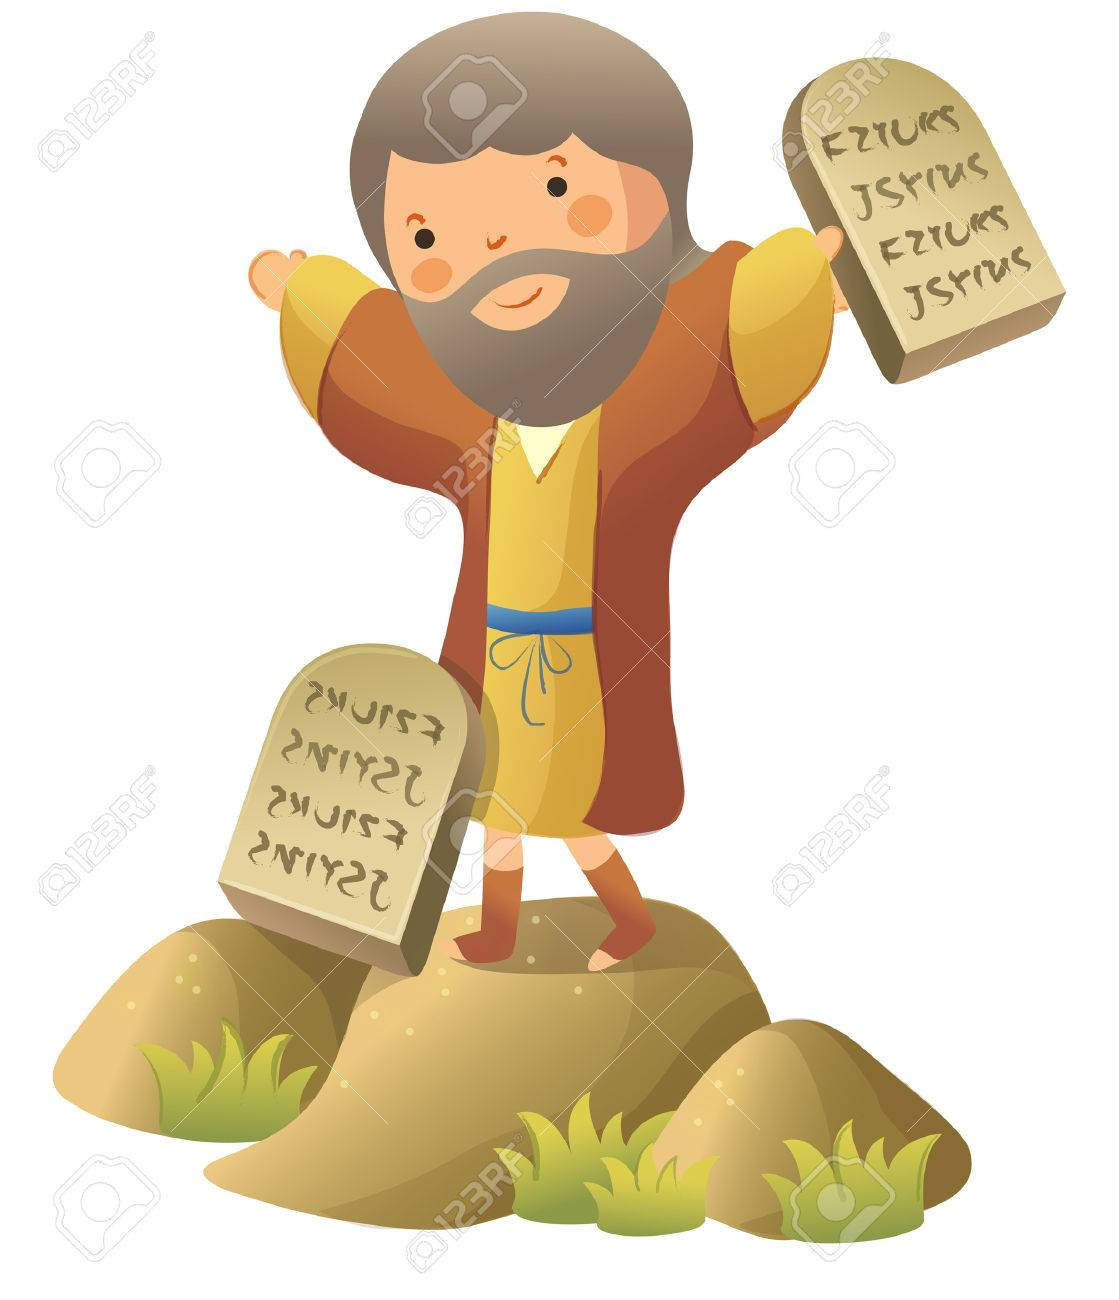 Moses standing and holding ten commandments.